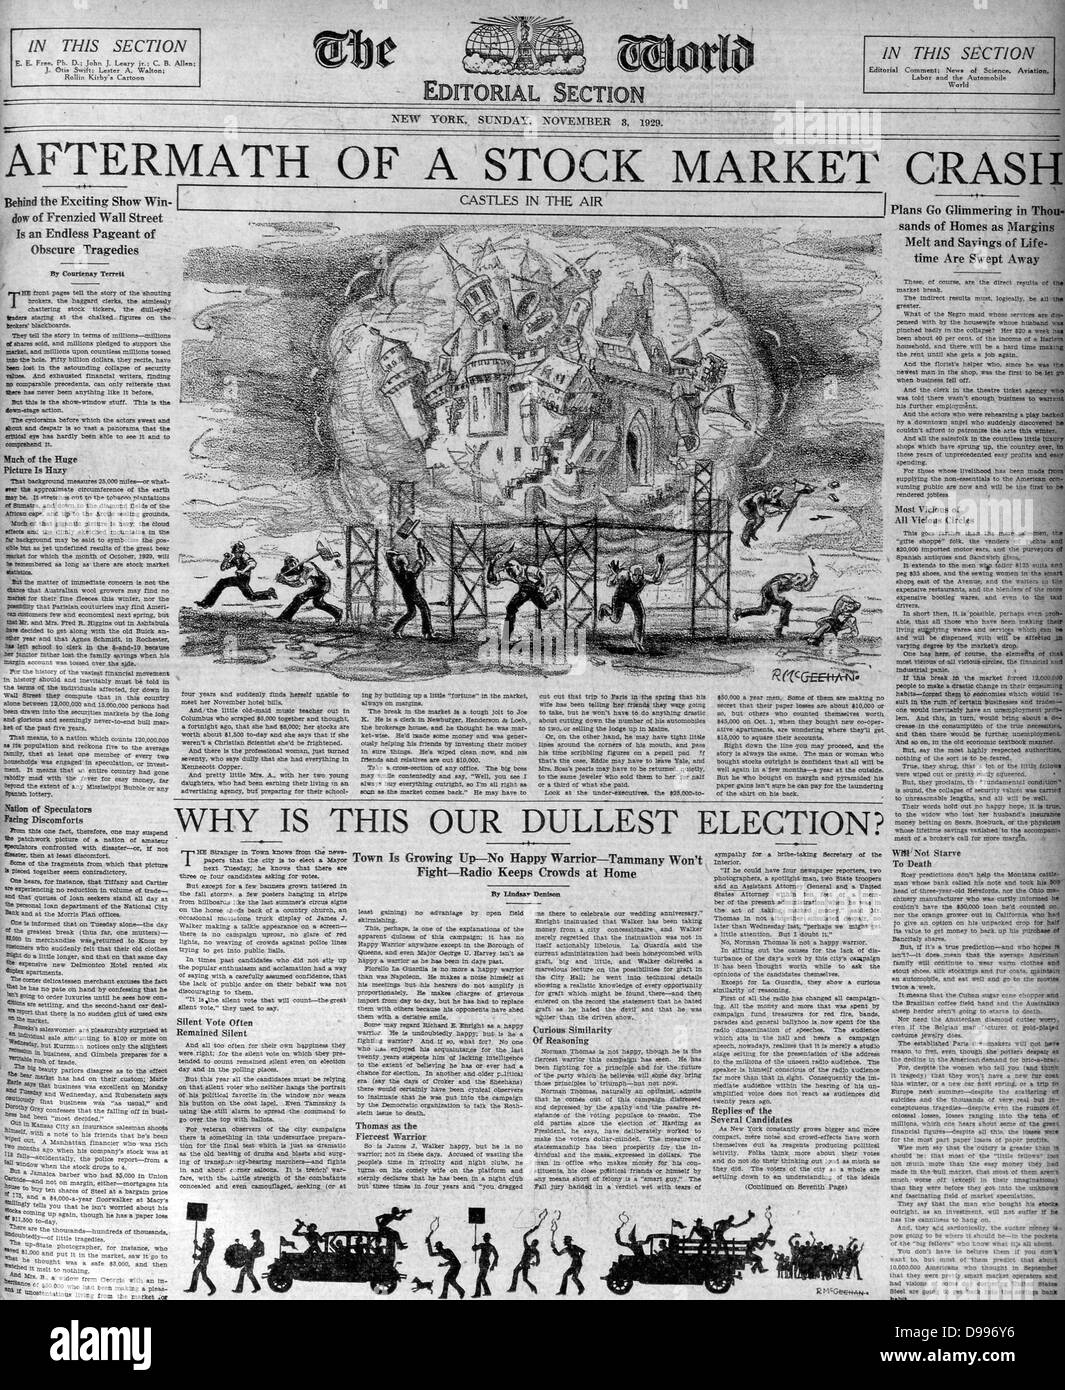 research paper on stock market crash of 1929 In this article, the writer first describes the financial environment in the united states before the 1929 stock market crash occurred the writer notes that for years the market was driven by public speculation.